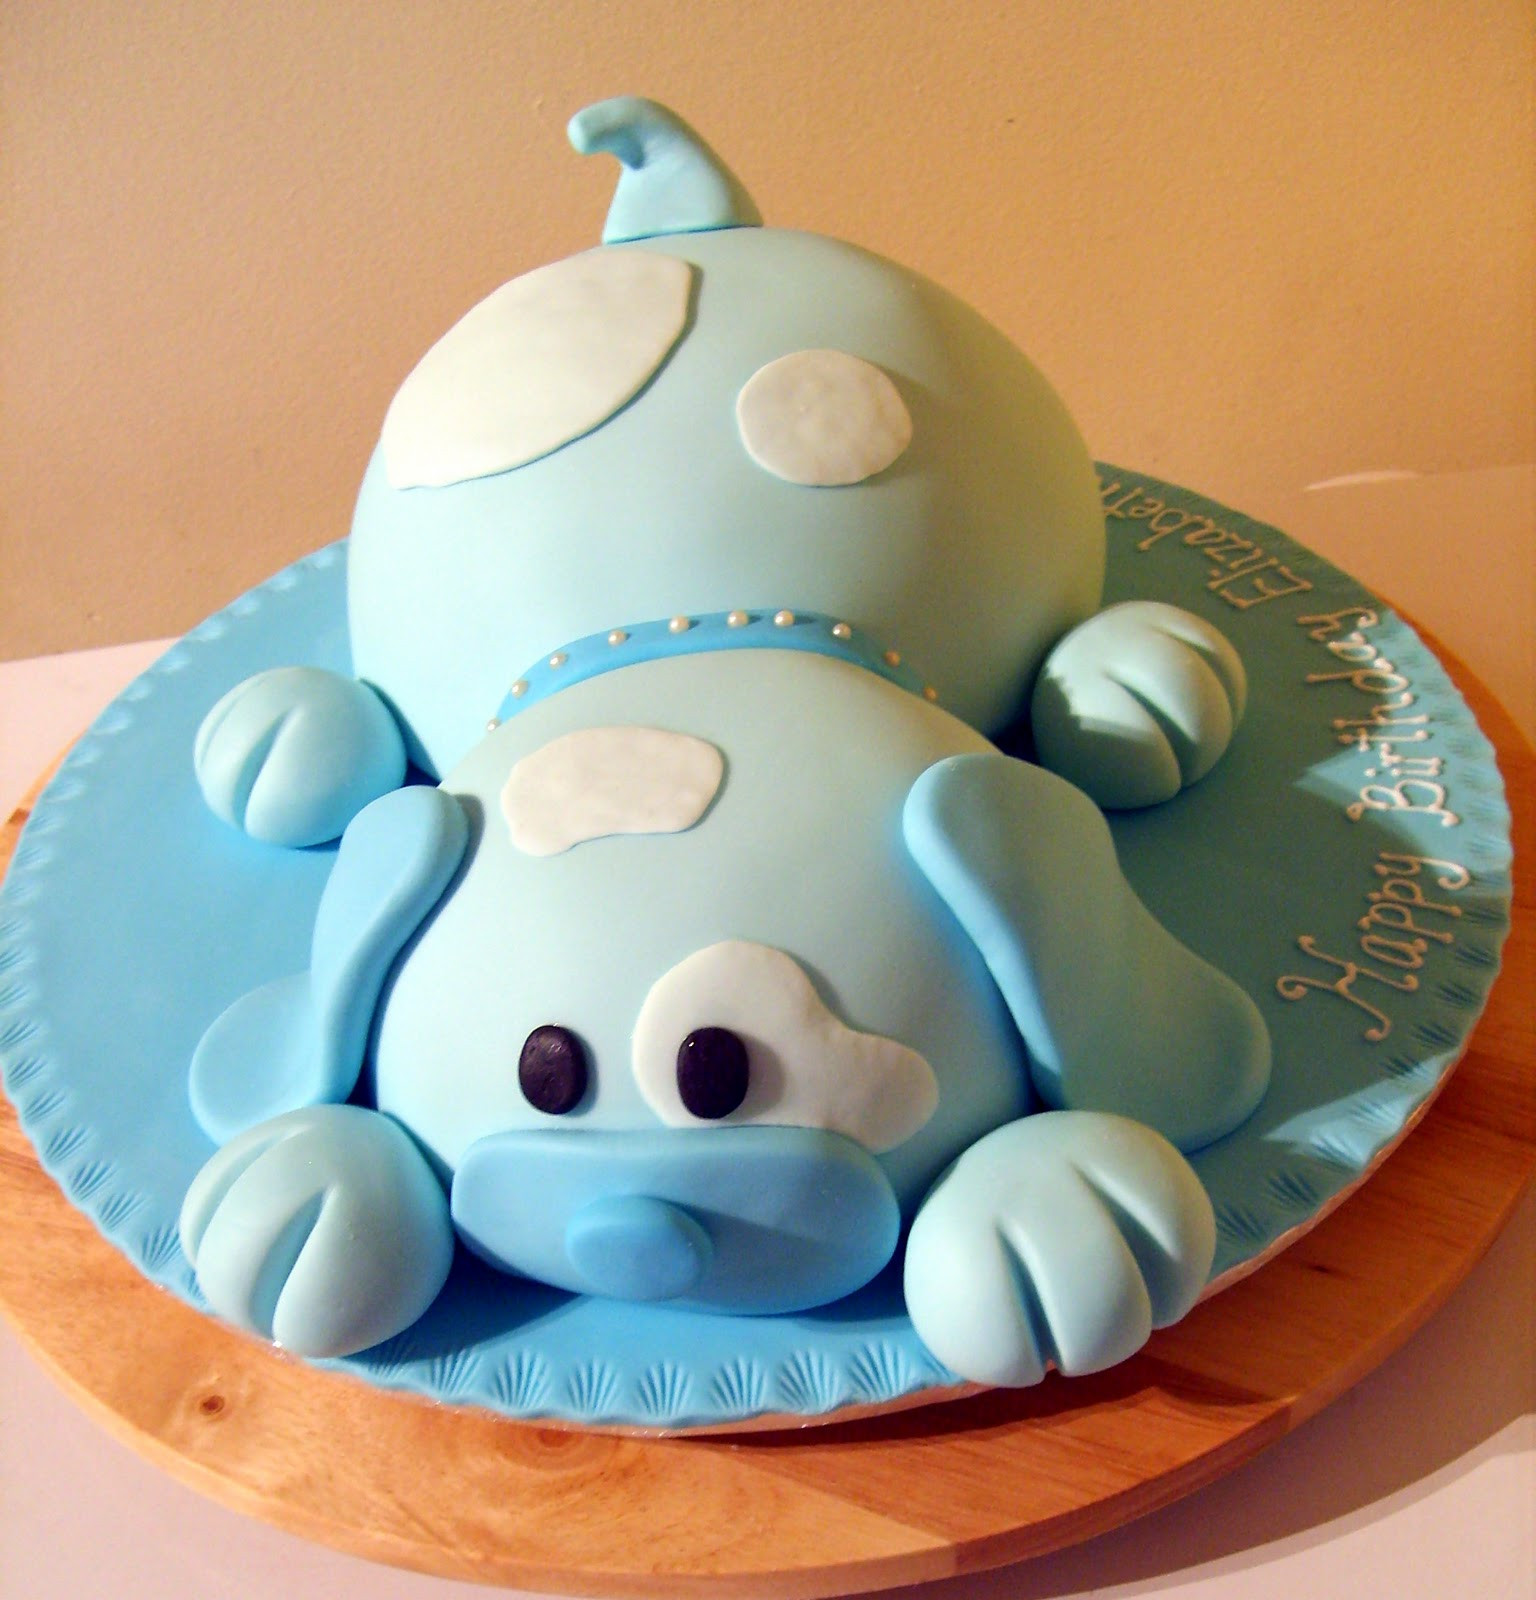 Best ideas about Doggie Birthday Cake . Save or Pin Caketopia Puppy Dog Birthday cake for Elizabeth Now.